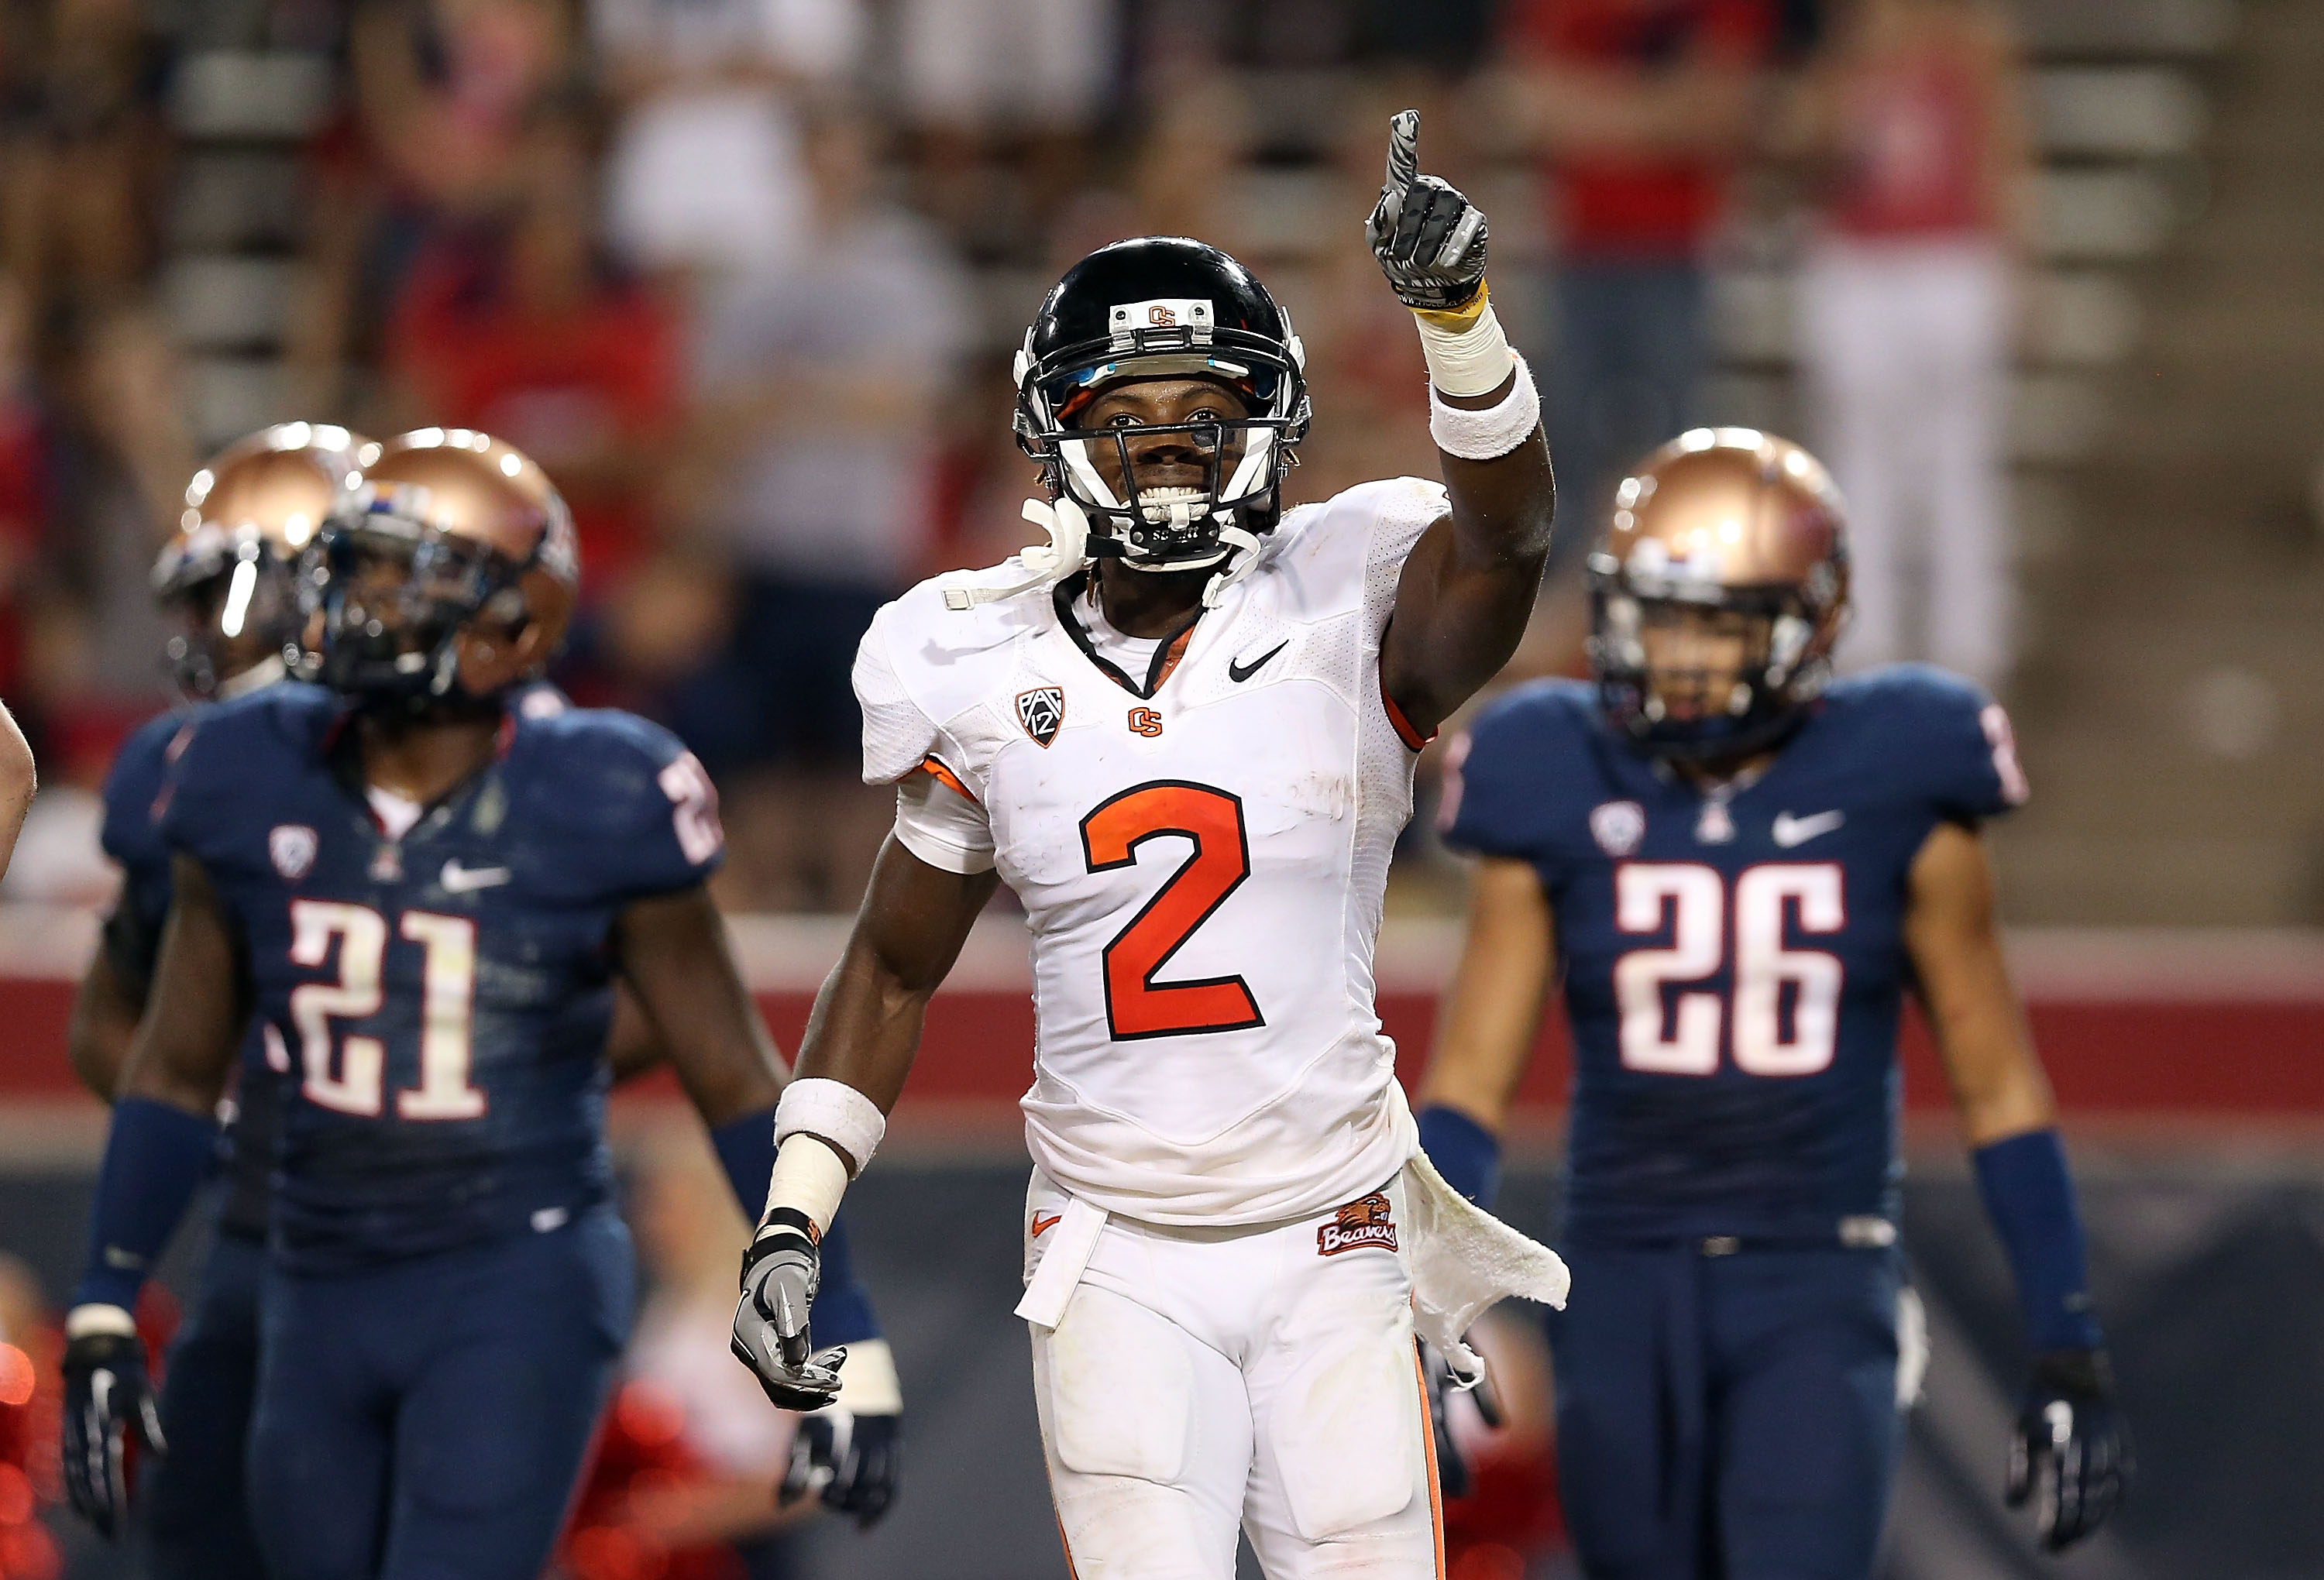 In three games, Oregon State's Markus Wheaton has 27 catches and three touchdowns. (Getty Images)